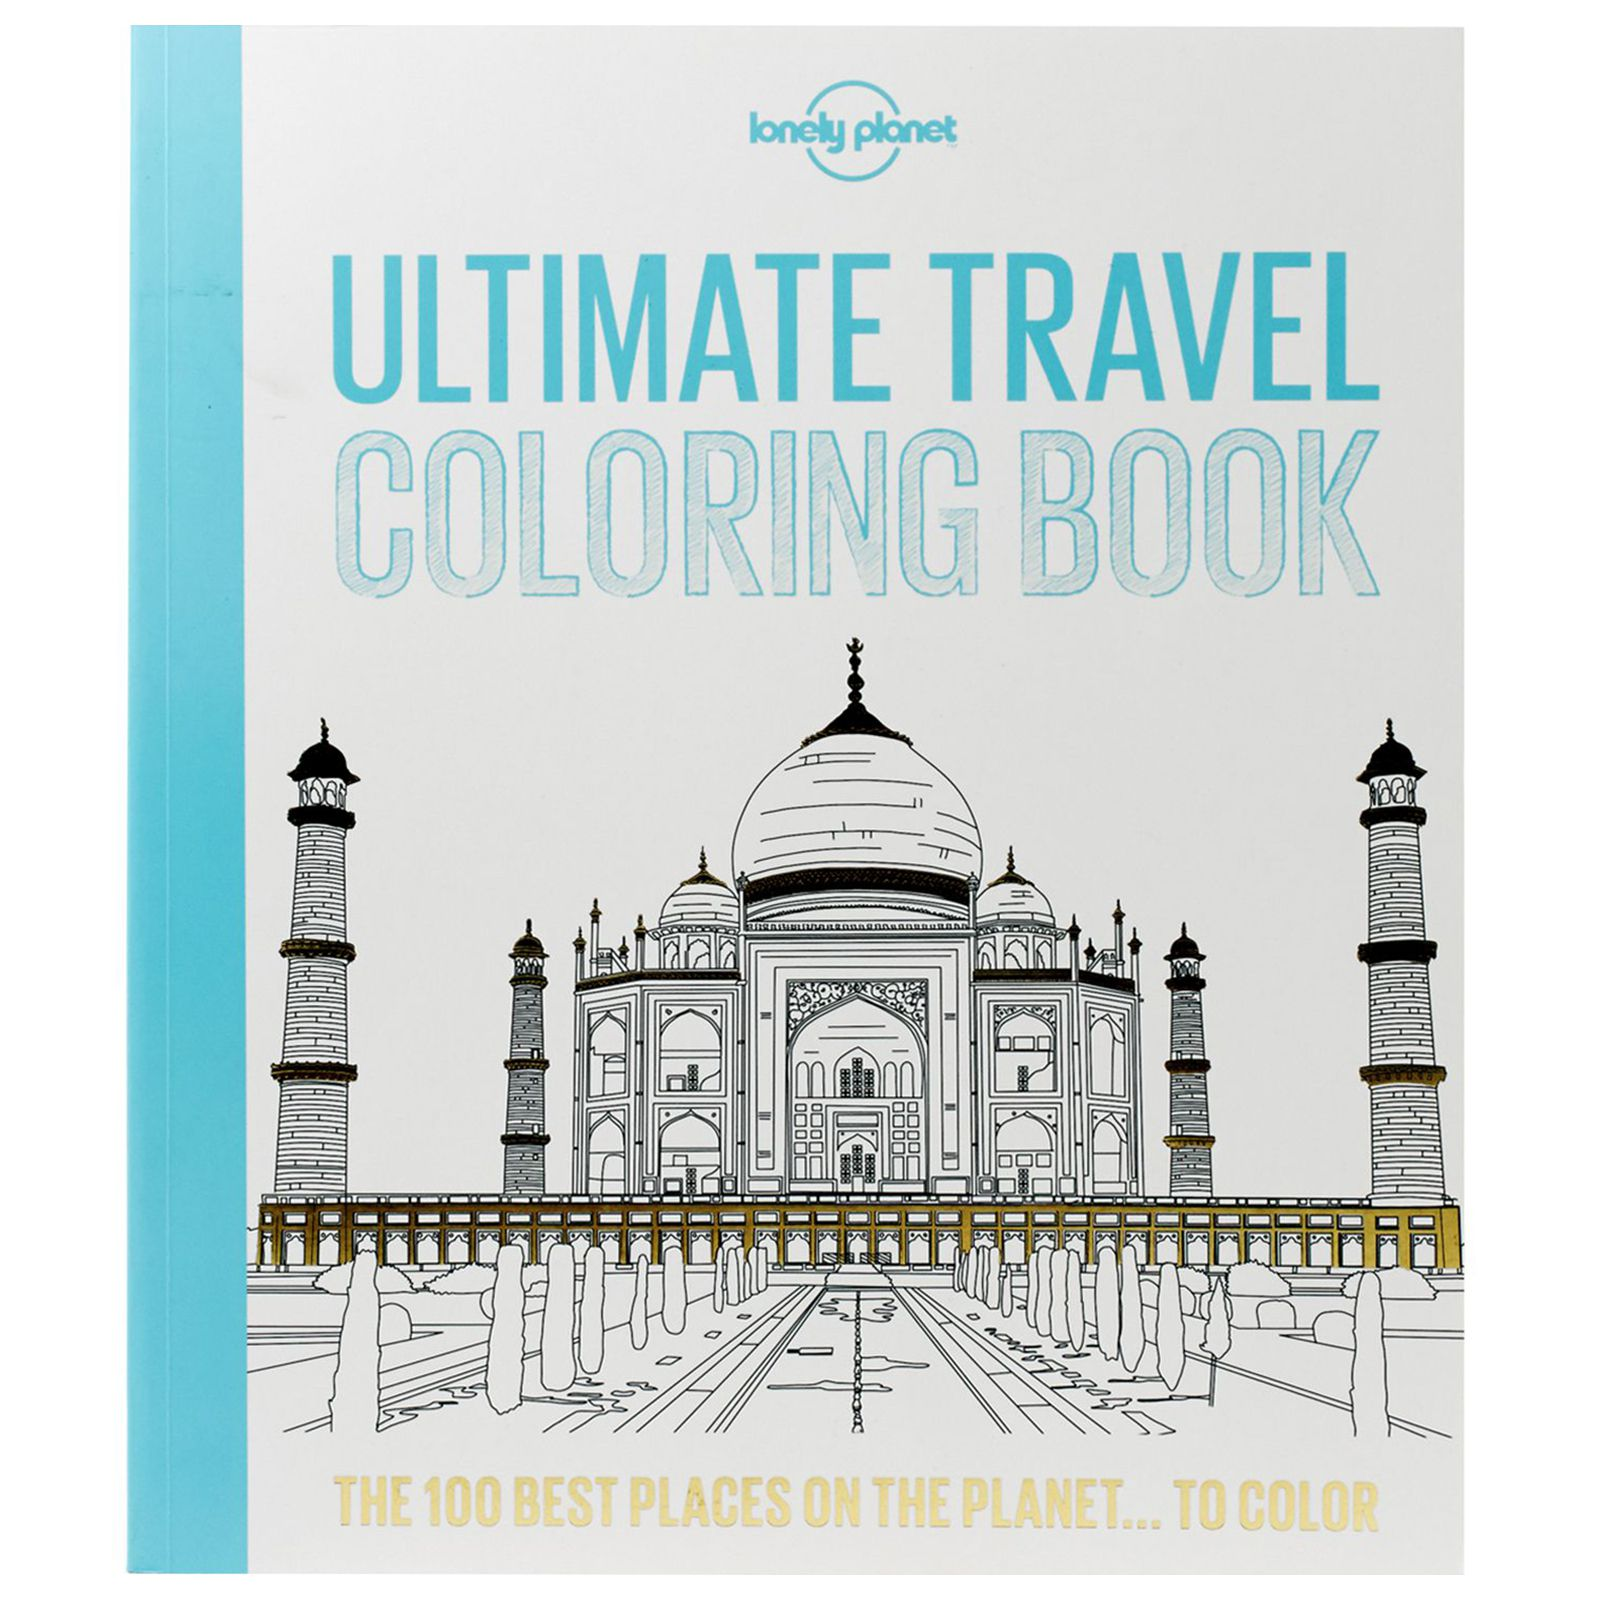 Lonely Planet Ultimate Travel Coloring Book - It might not be the most practical of gifts... but come on - it is not just about serious business, right? To calm the nerves between travels, to recall visited places or dream and plan about new ones.